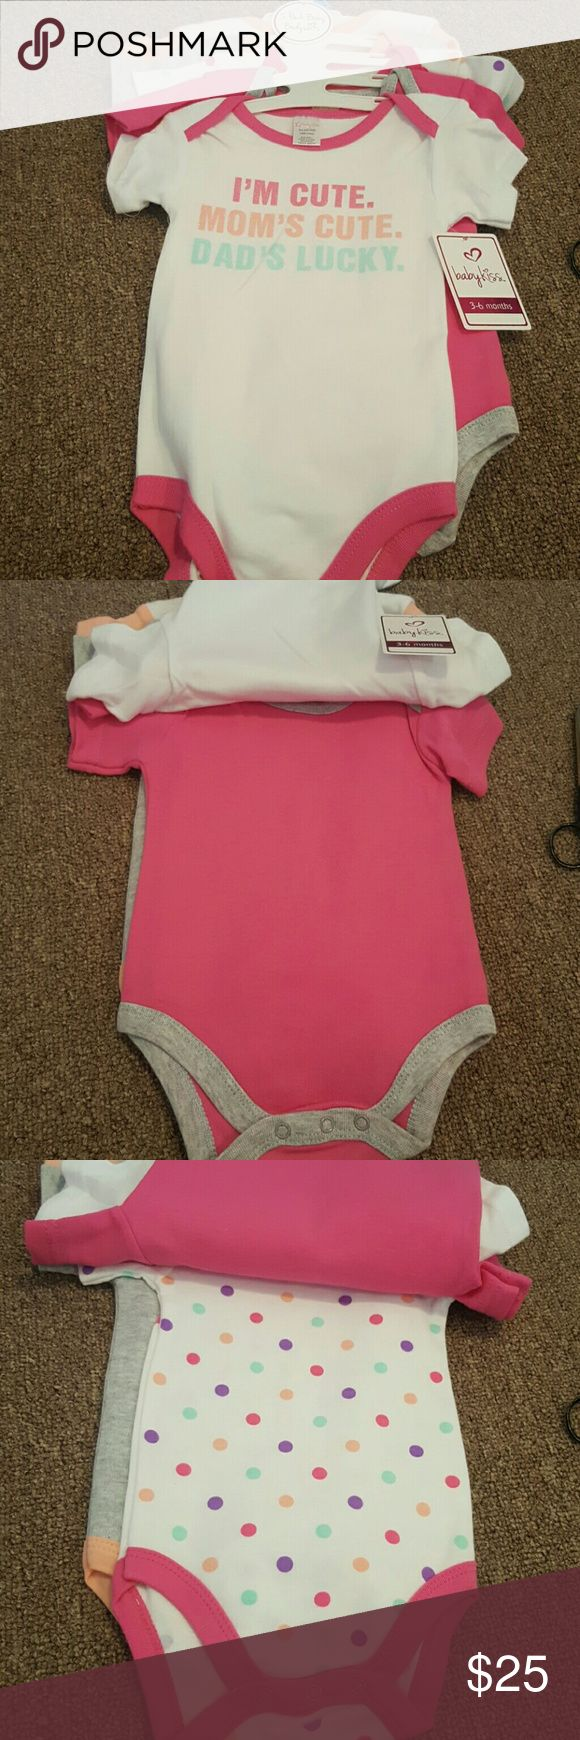 5 Pack Bodysuits for 3-6MO Brand new. 5 pack bodysuits. 100% cotton. For children 3-6 months. Baby Kiss One Pieces Bodysuits